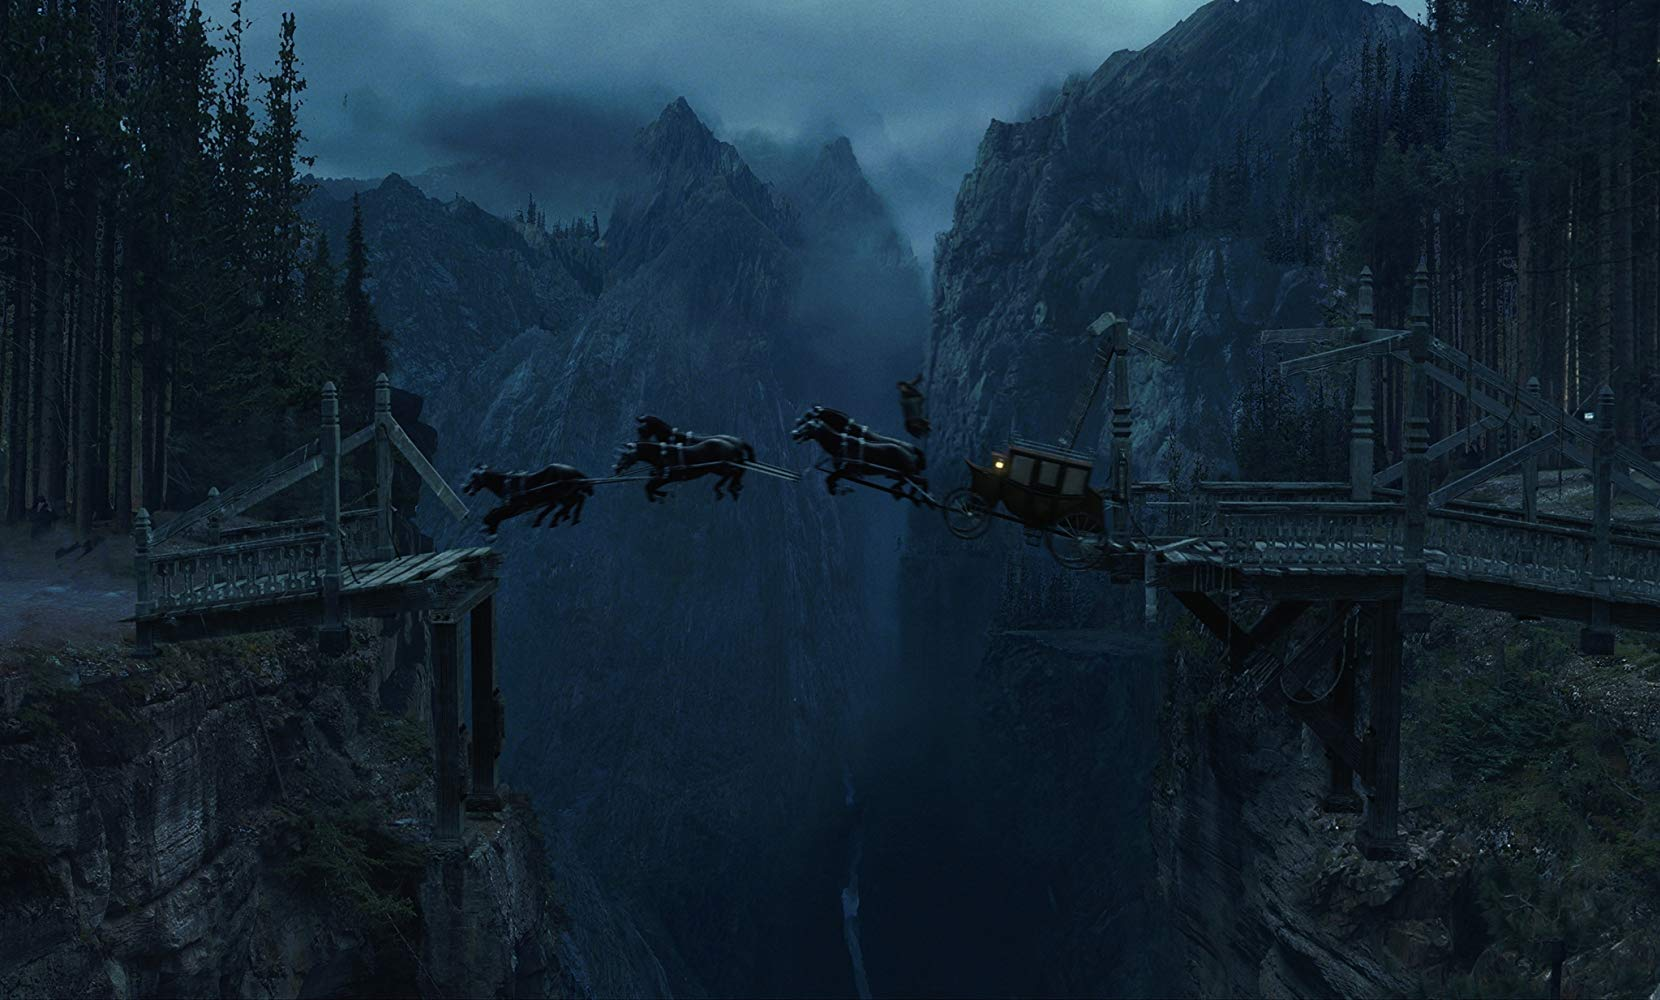 The horse carriage conducts a stunt leap across a ravine in Van Helsing (2004)